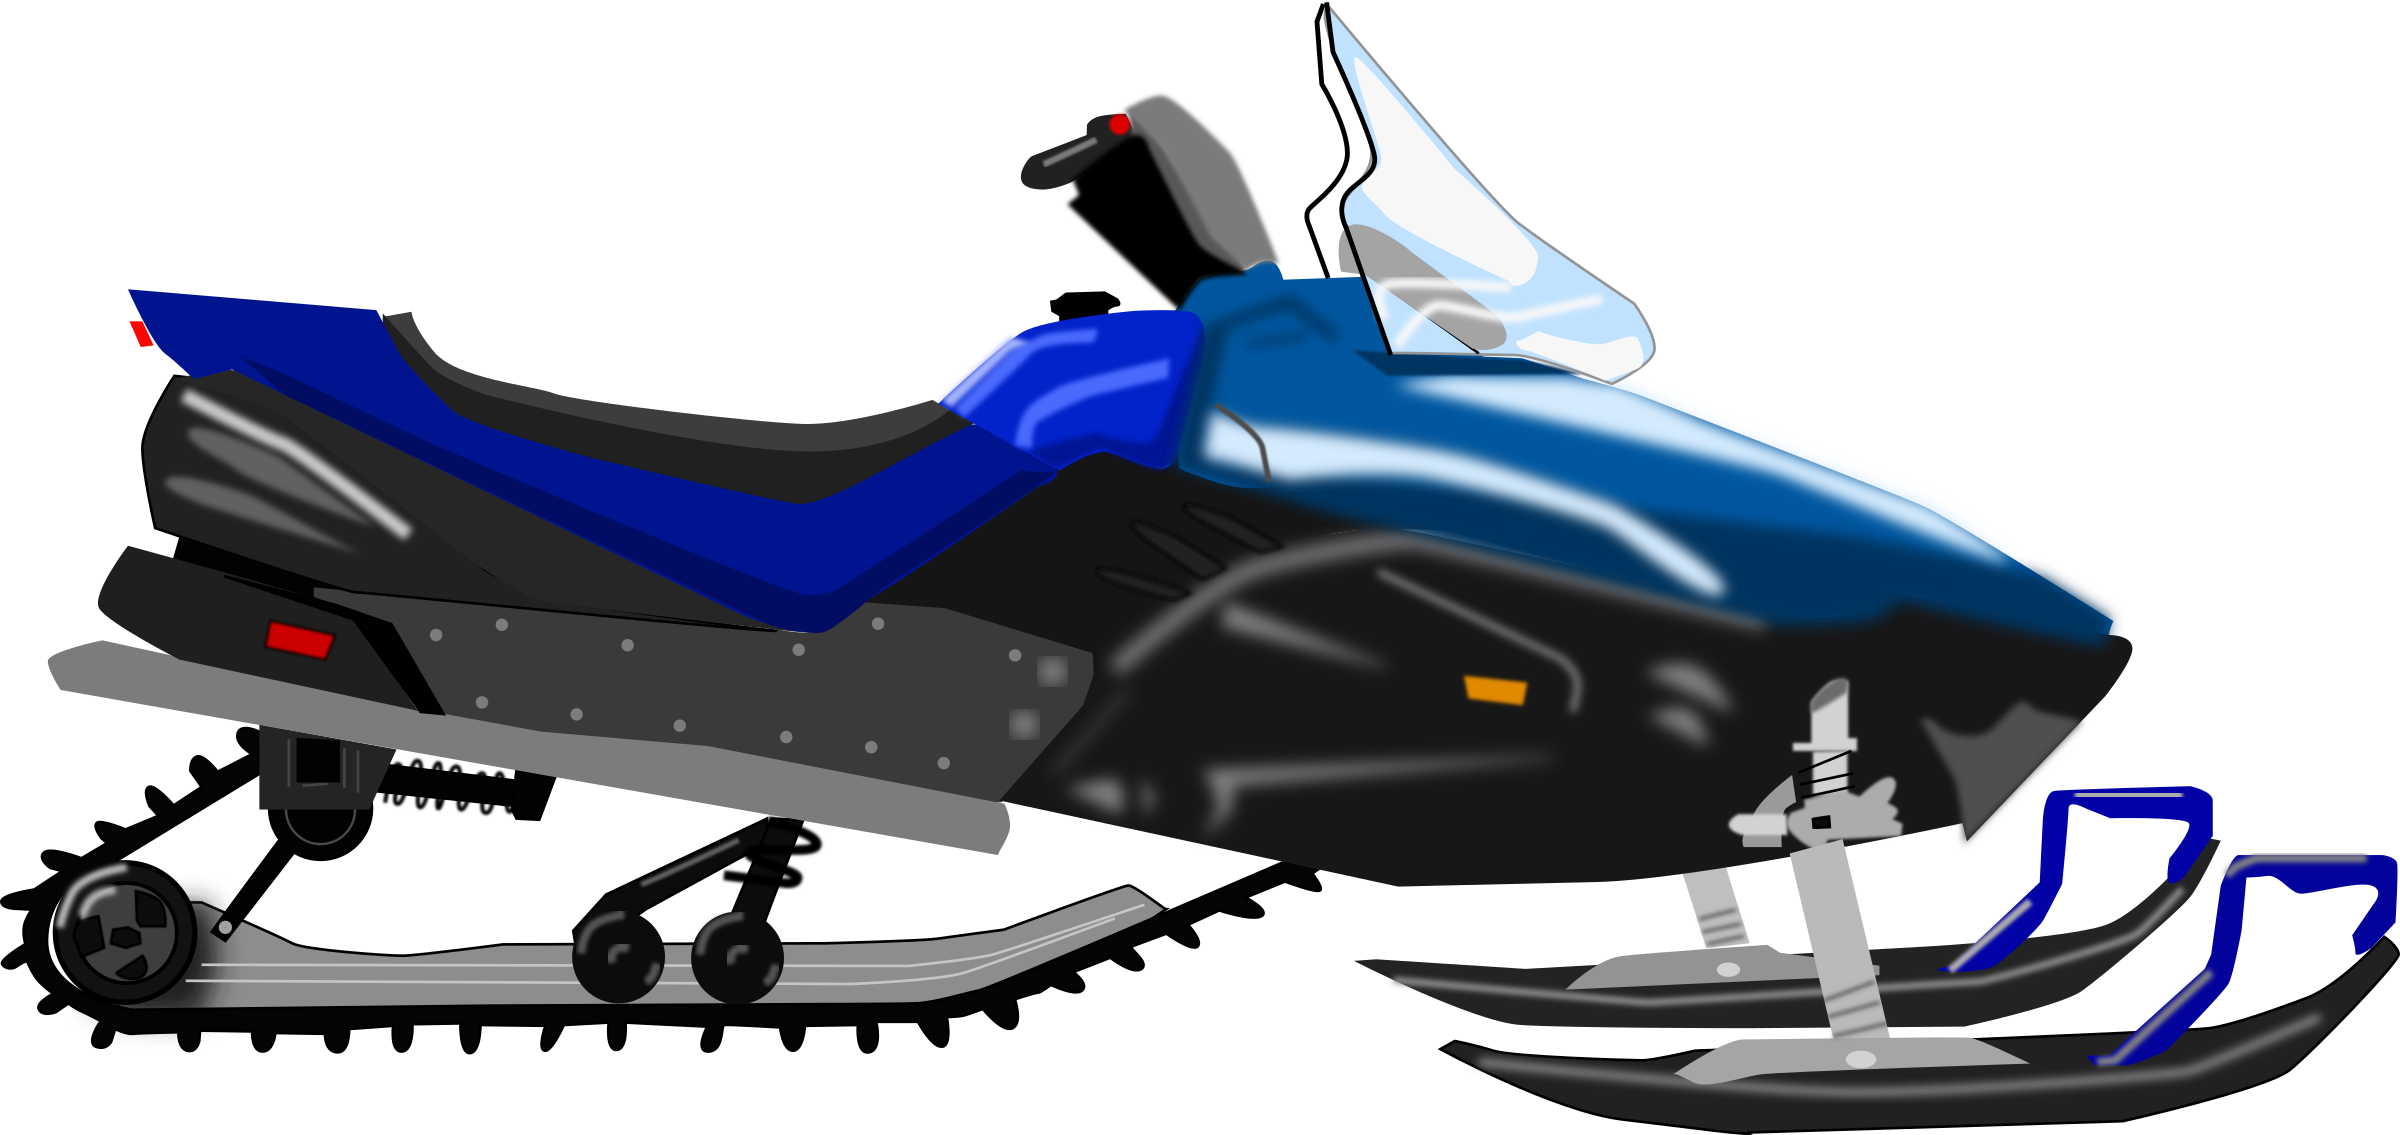 Arctic cat snowmobile clipart graphic transparent library Clipart - Snowmobile graphic transparent library